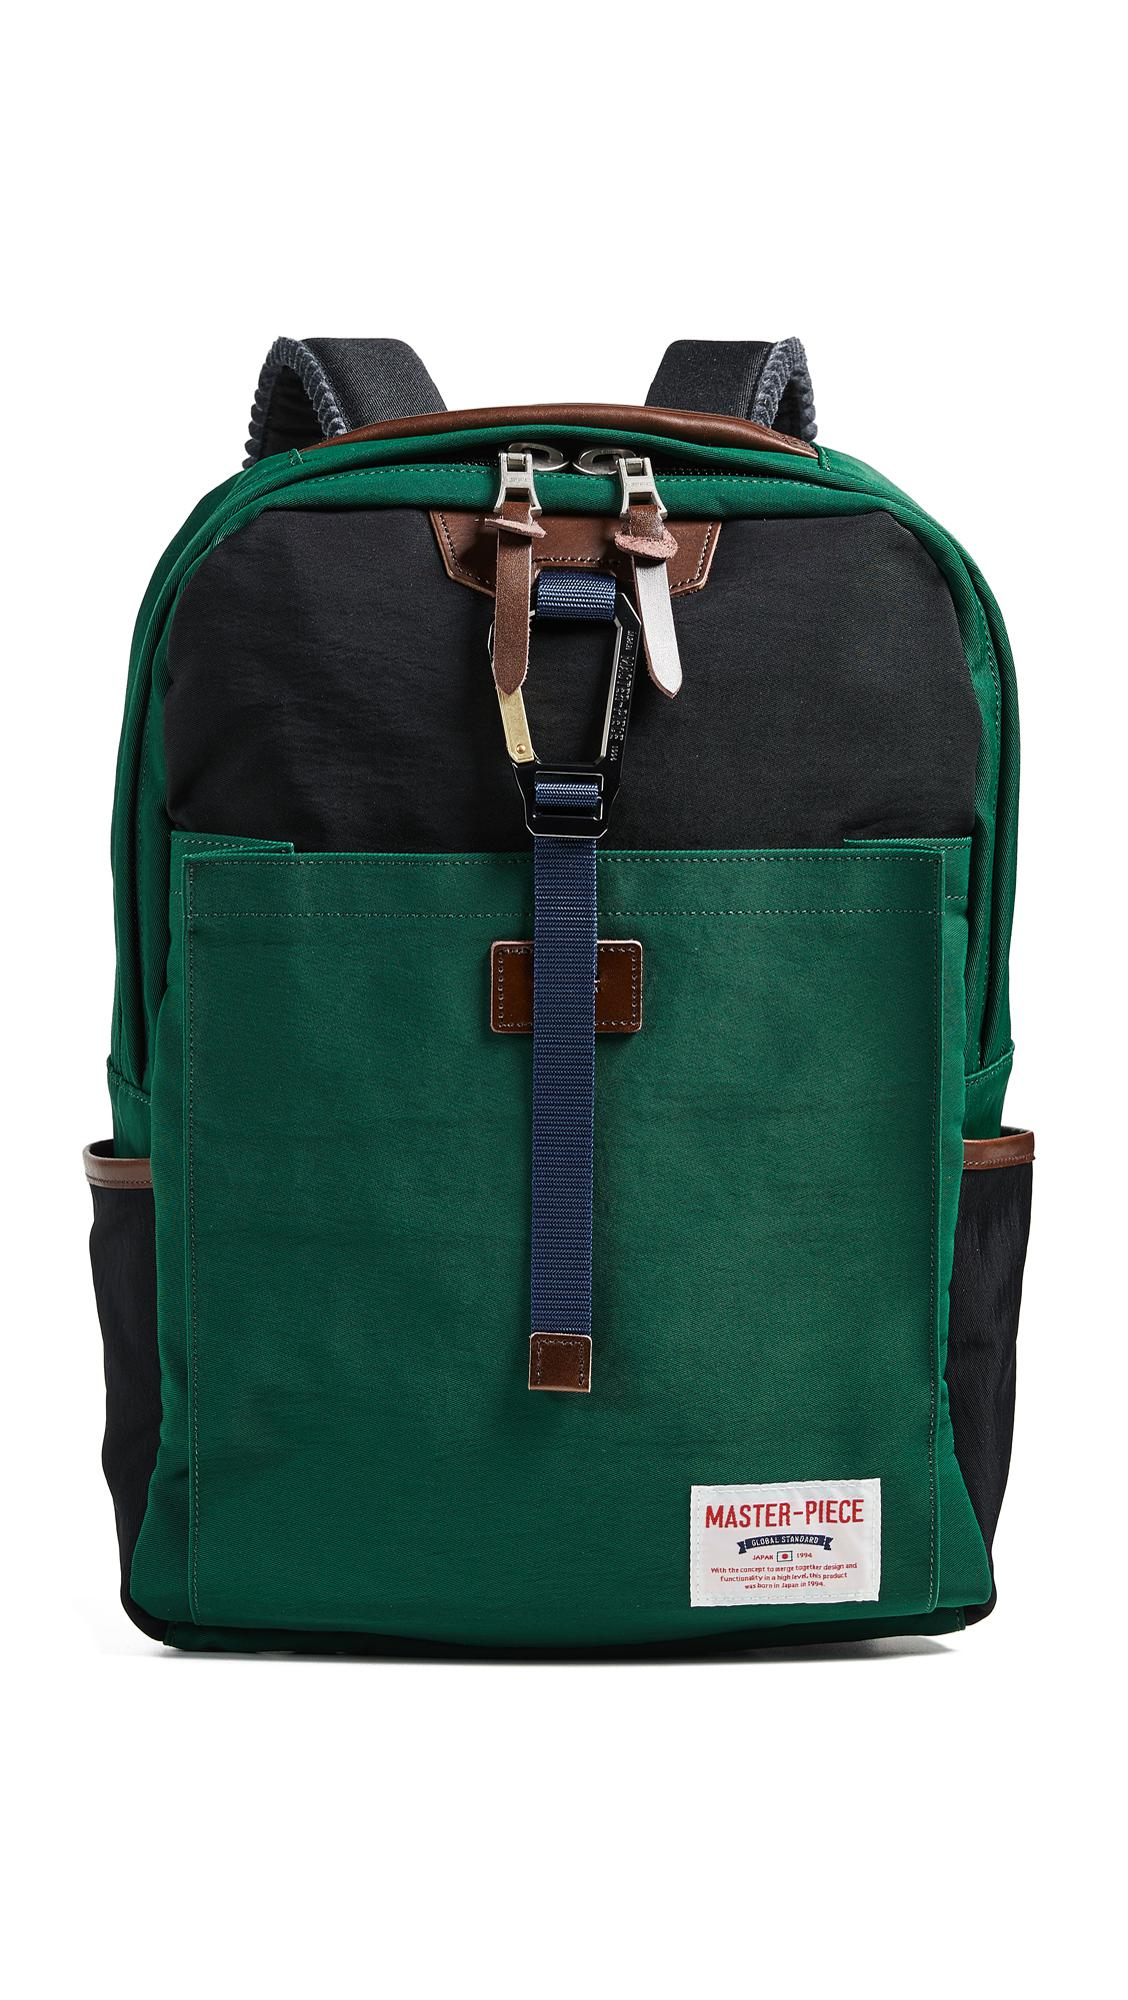 Master Piece Link Backpack in Green for Men - Lyst